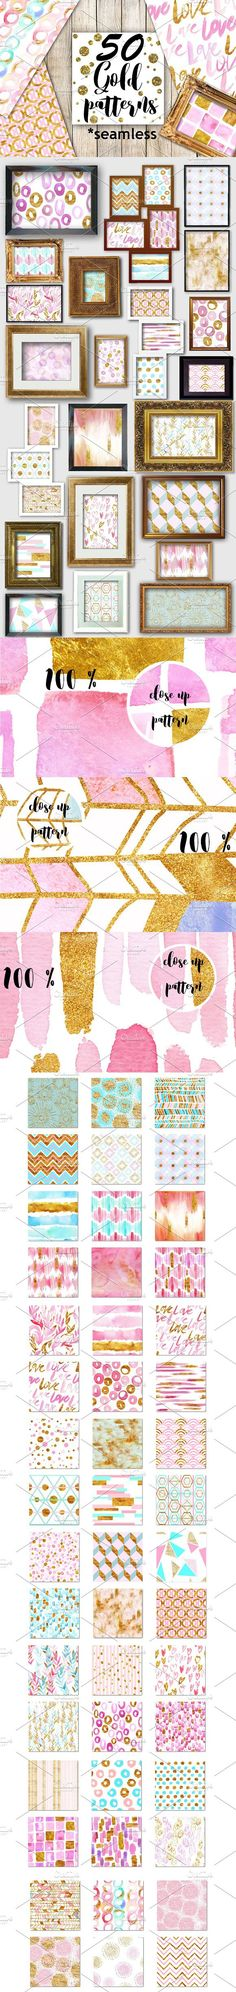 50 gold and pink seamless patterns!. Wedding Card Templates